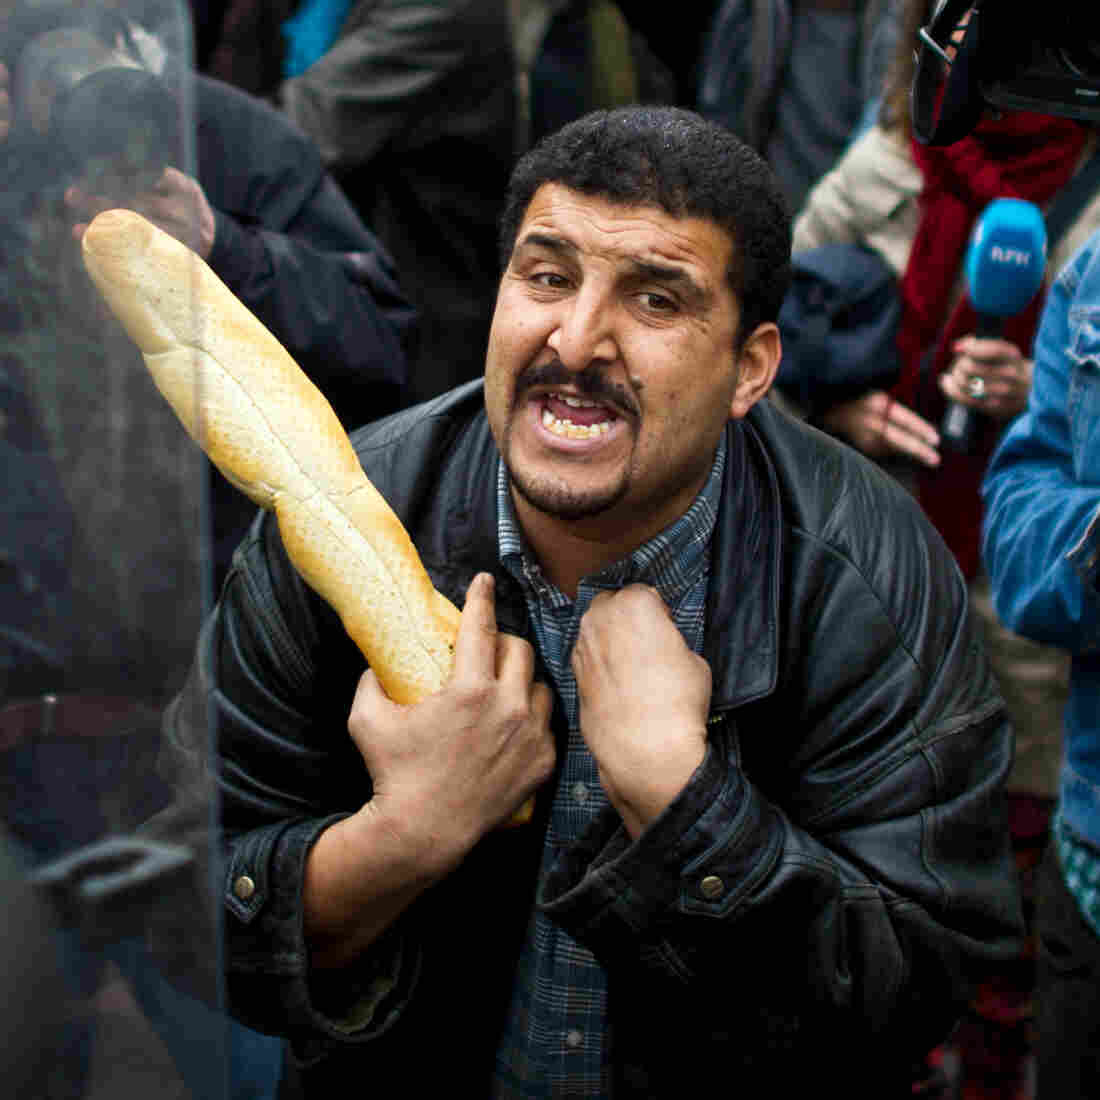 A Tunisian protester holds a baguette while taking to riot police in January 2011.